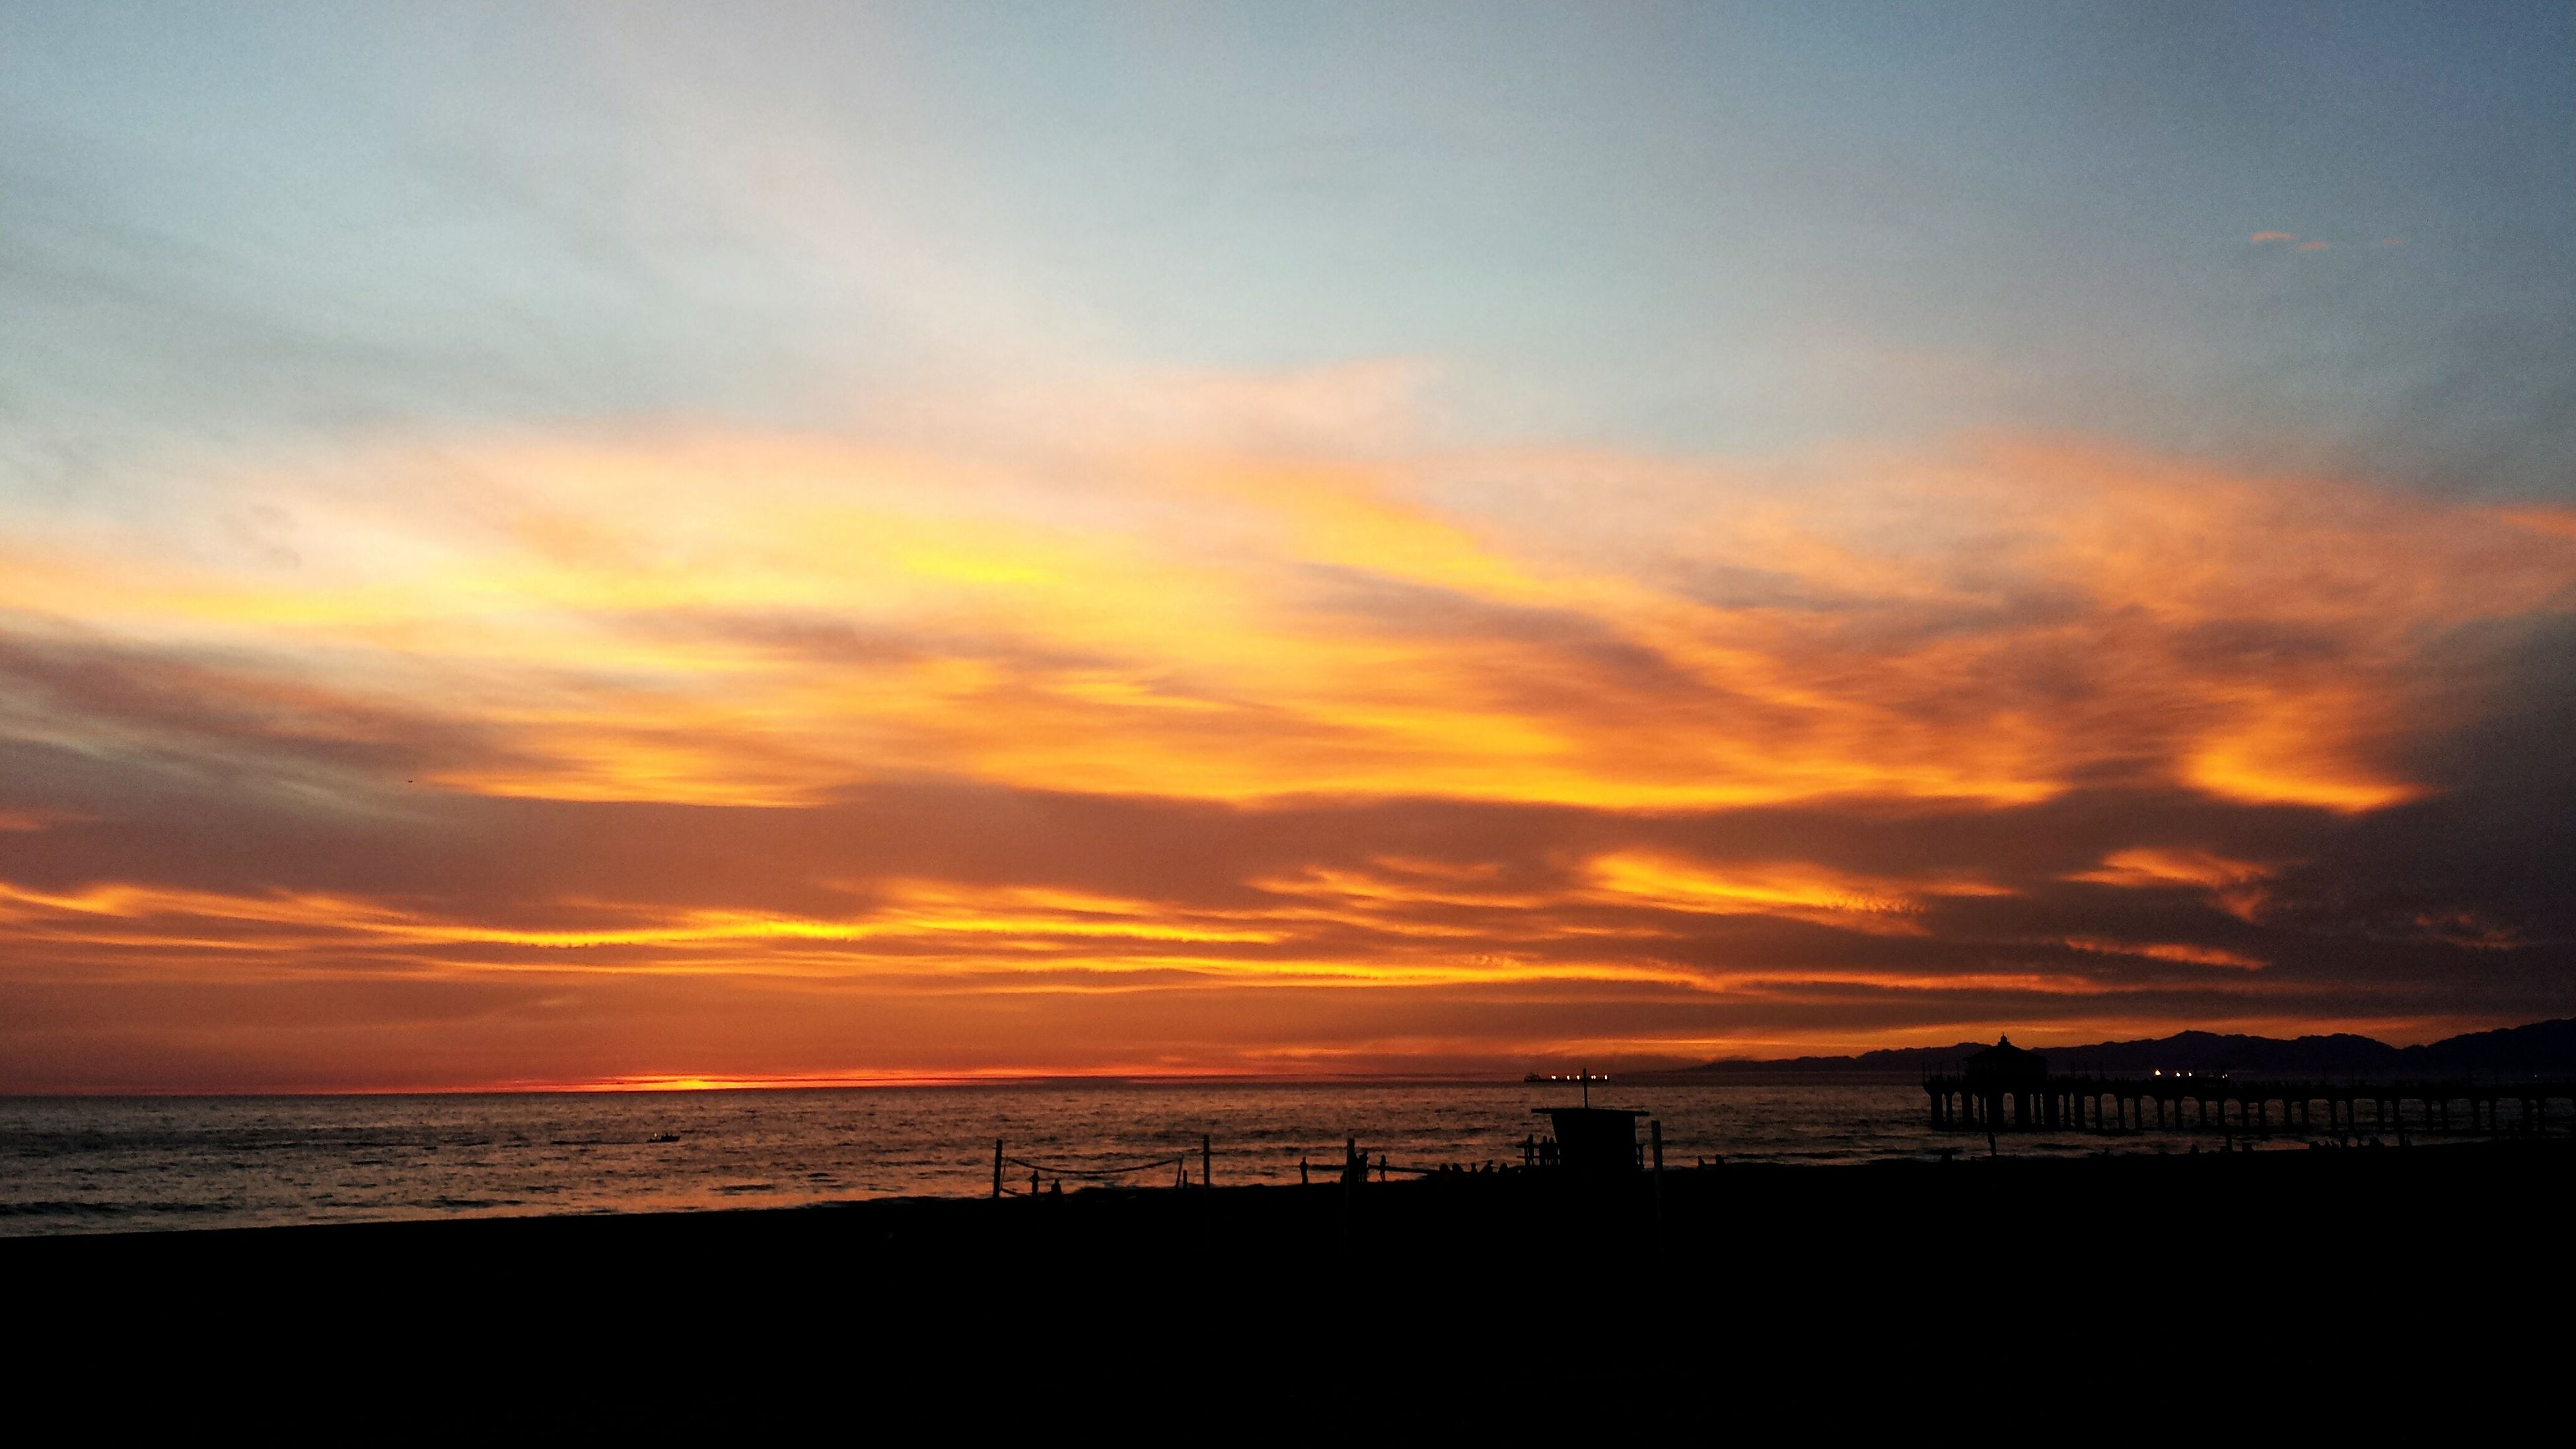 sea, sunset, horizon over water, water, scenics, sky, silhouette, beach, beauty in nature, tranquil scene, tranquility, orange color, idyllic, cloud - sky, shore, nature, incidental people, dramatic sky, cloud, outdoors